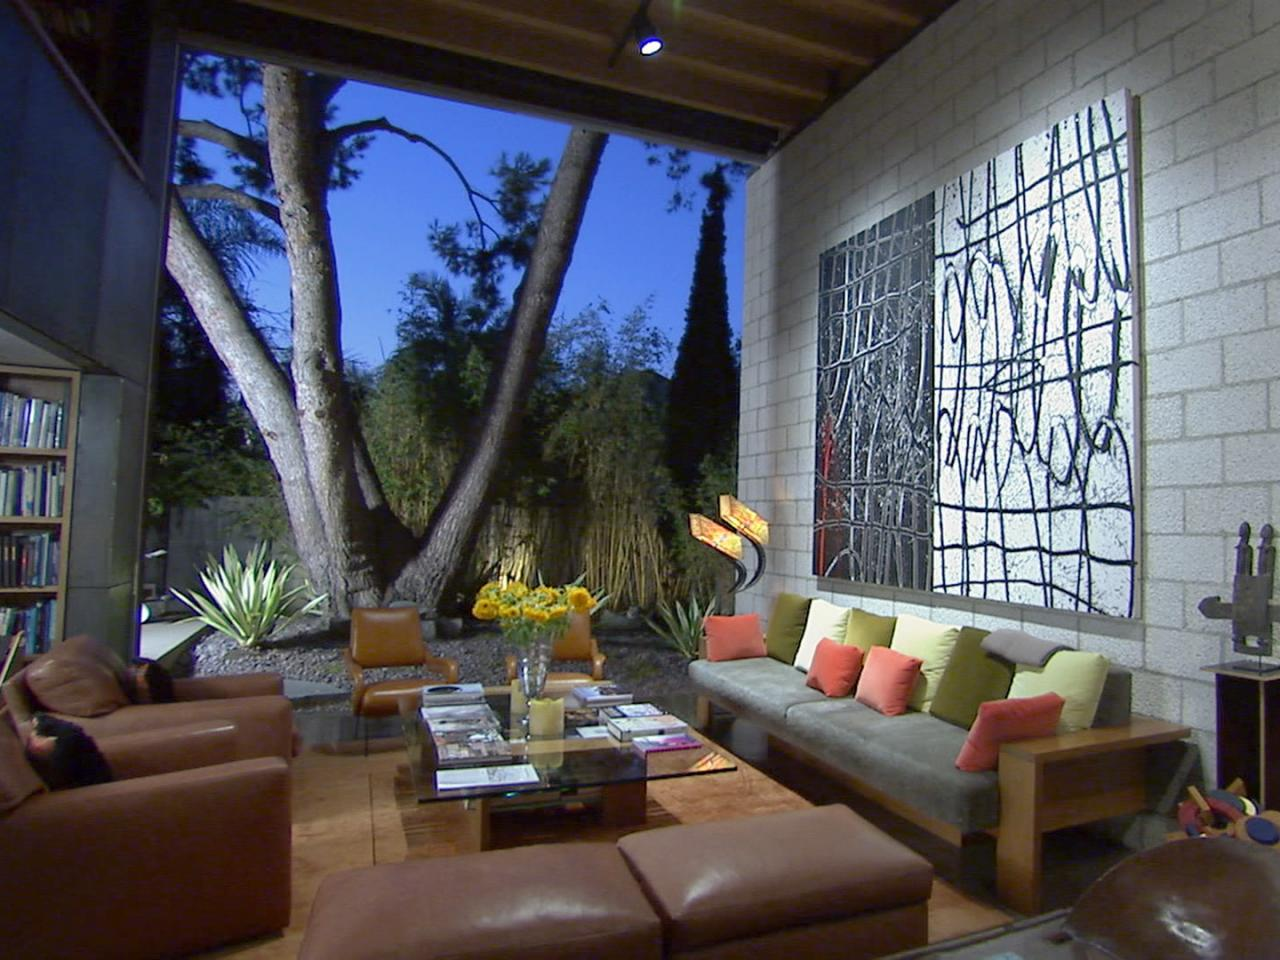 Hgtv 39 s top 10 outdoor rooms hgtv for Best interior decorating sites